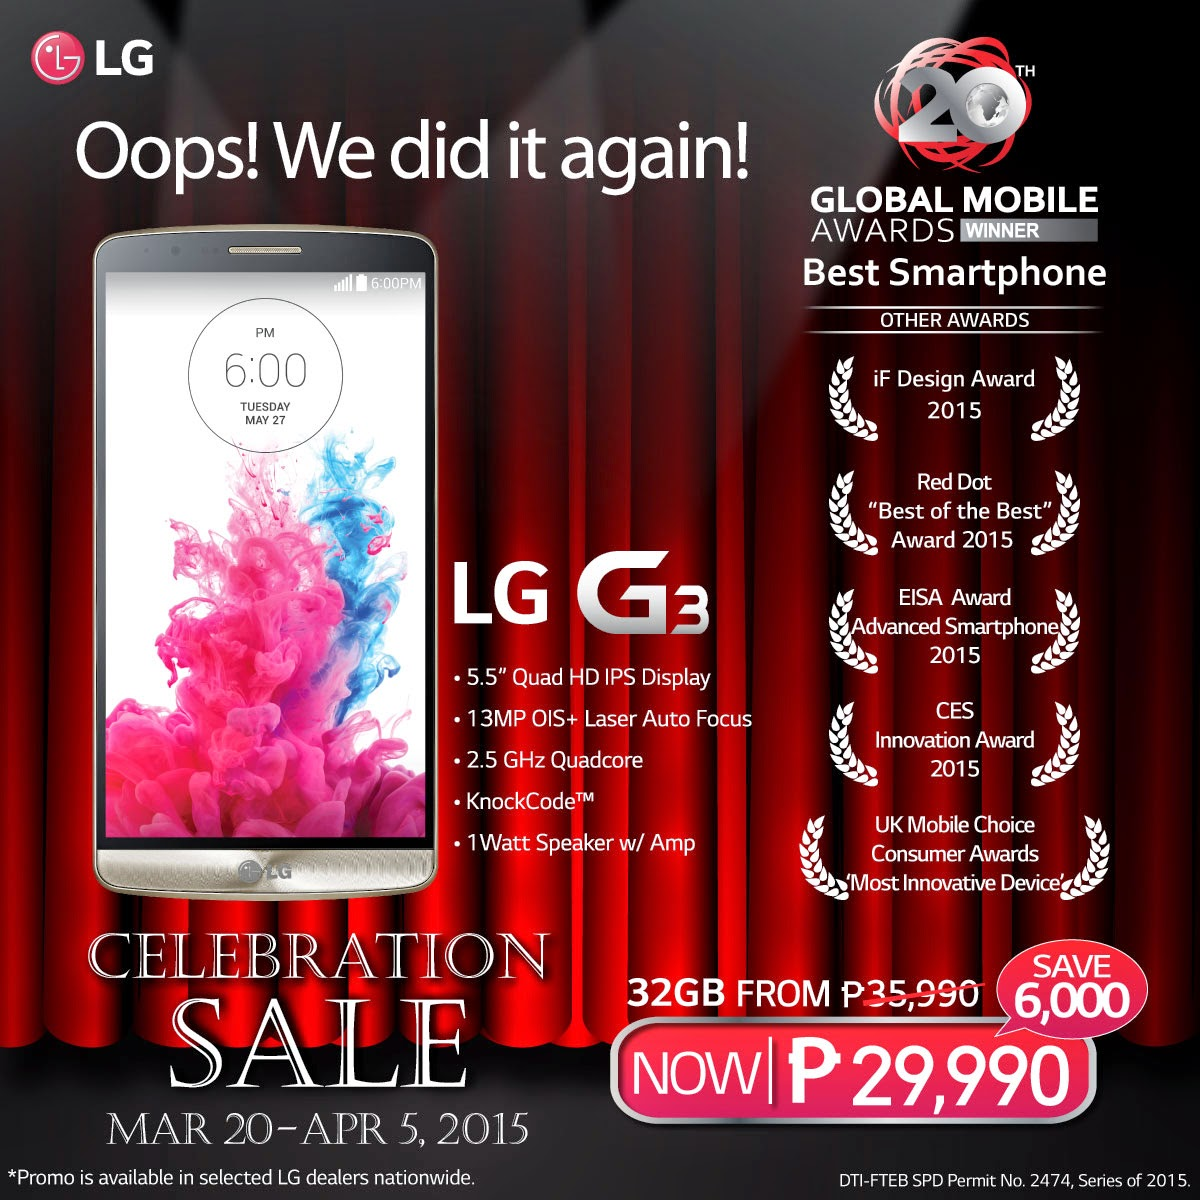 LG G3 Grand Celebration Sale